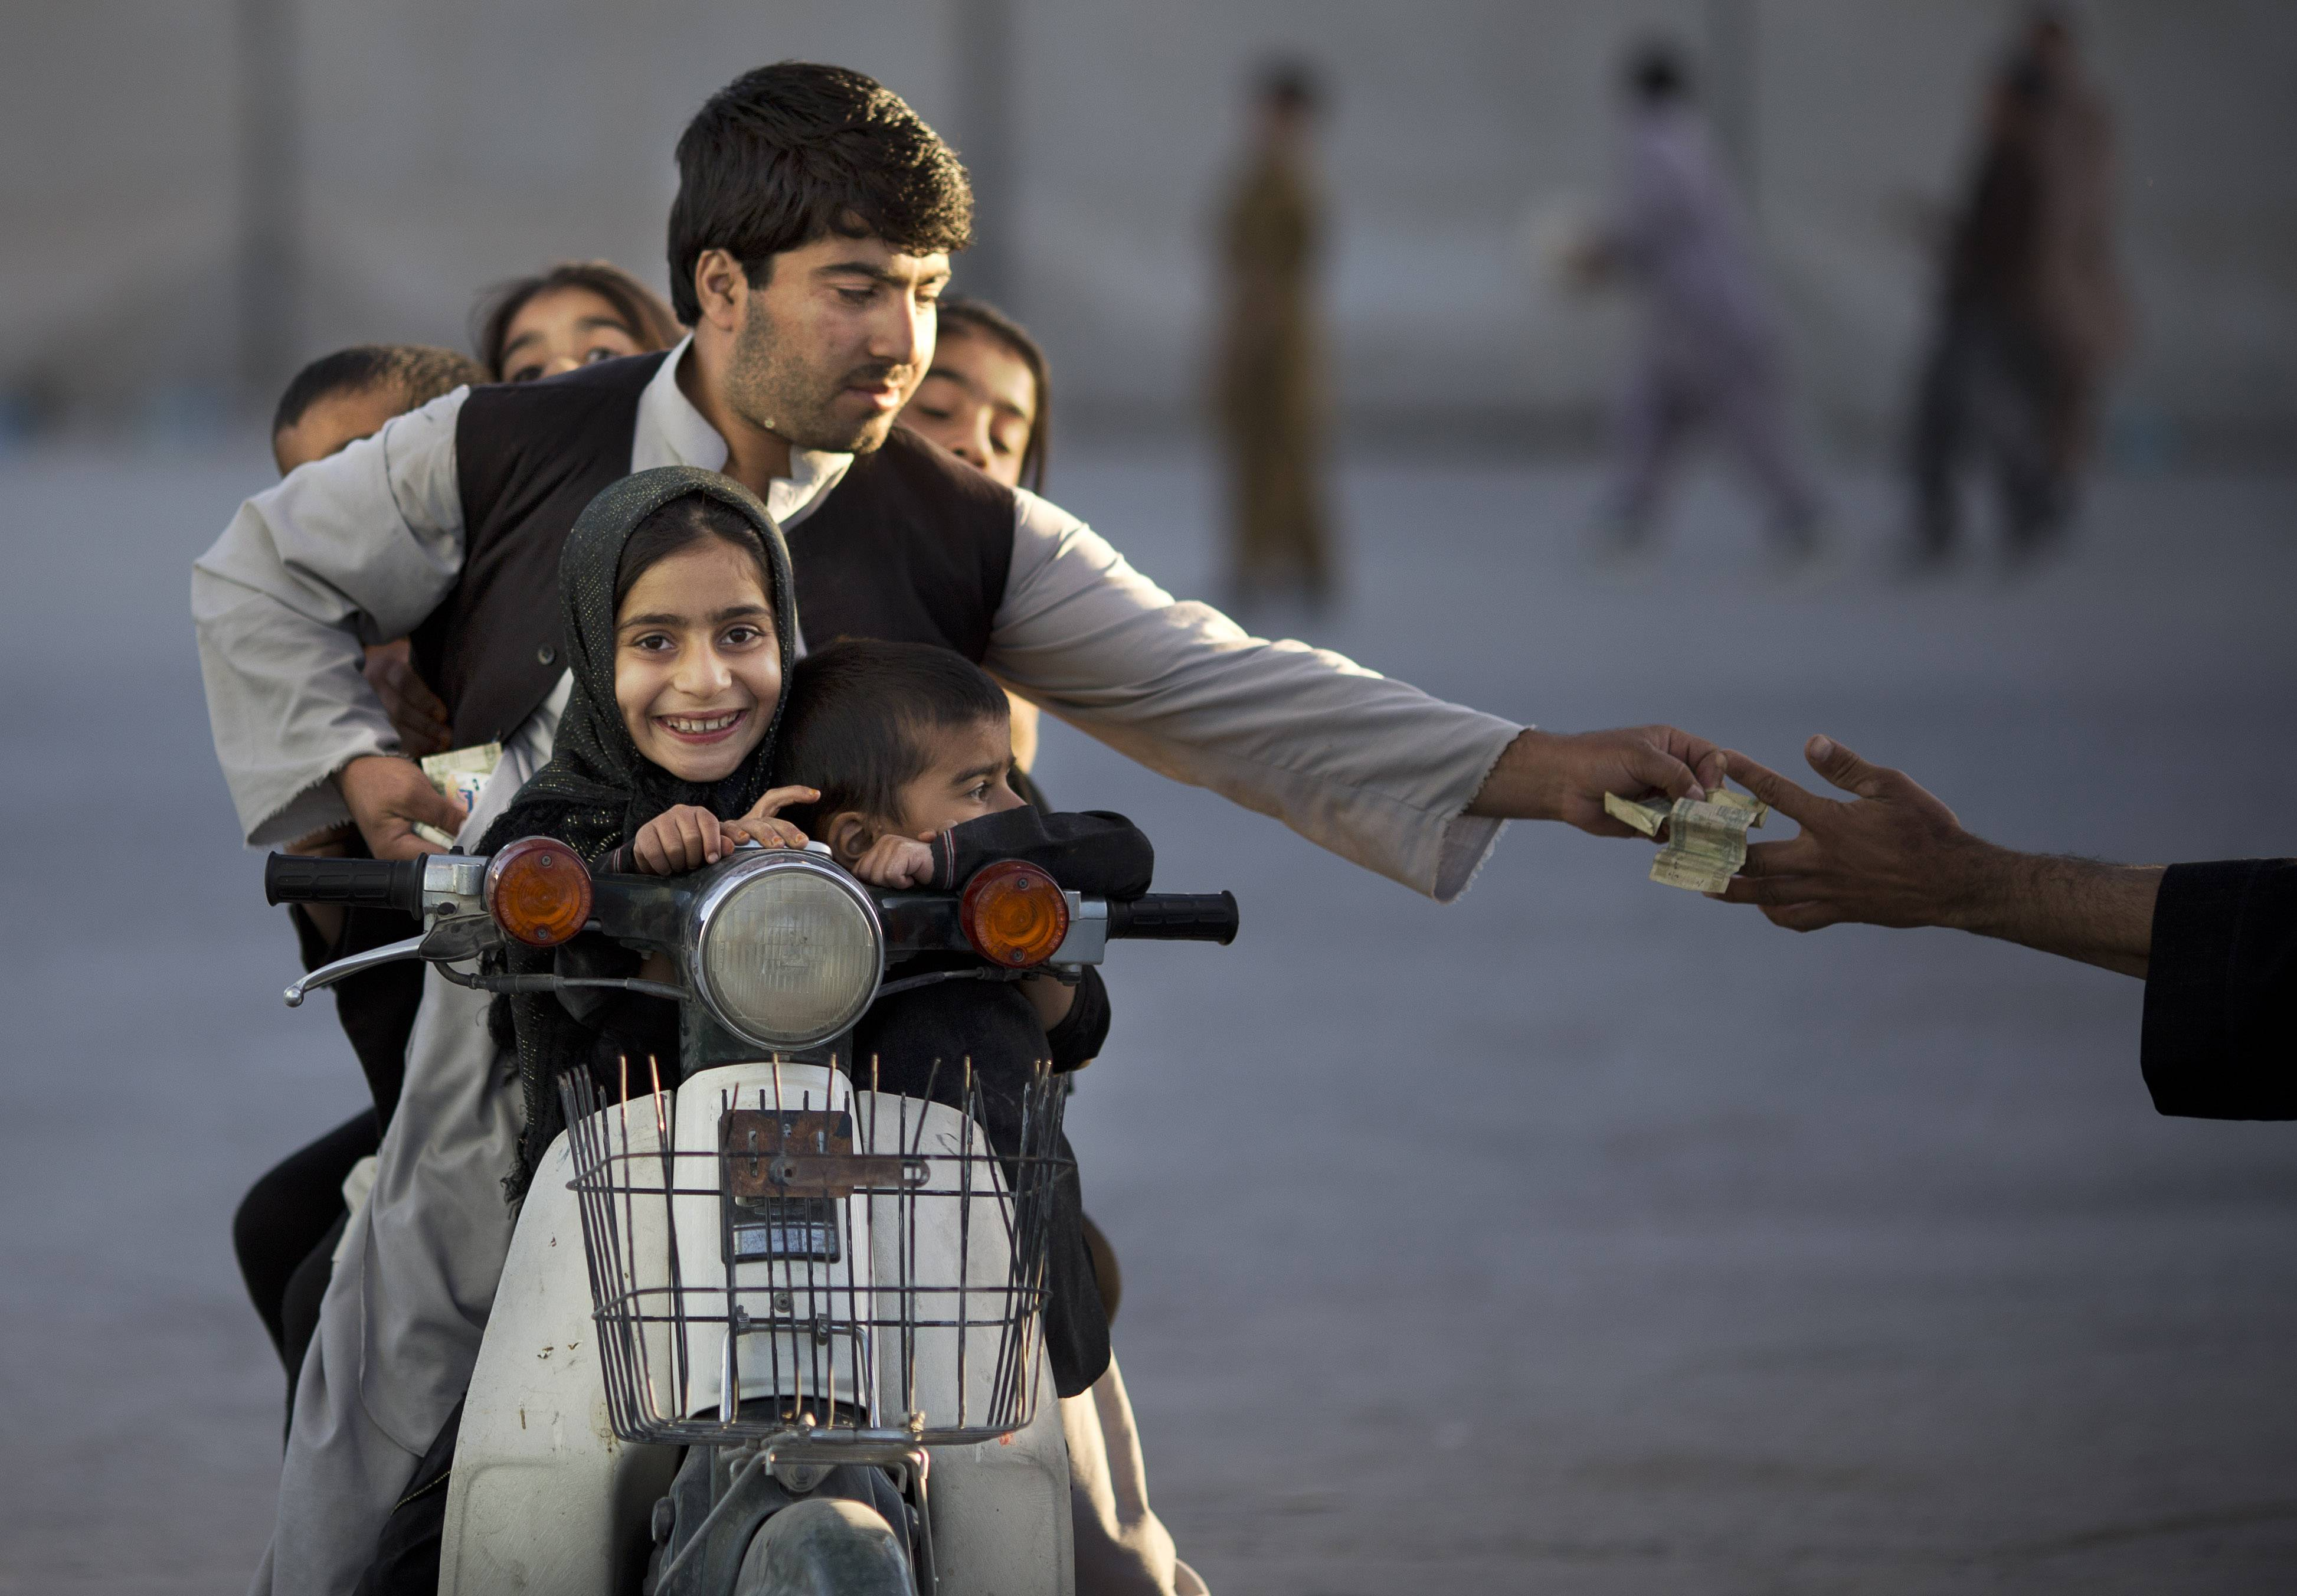 In this Friday, Nov. 1, 2013 file photo made by Associated Press photographer Anja Niedringhaus, an Afghan man with his five children on his motorbike pays money to enter a park in Kandahar, southern Afghanistan.